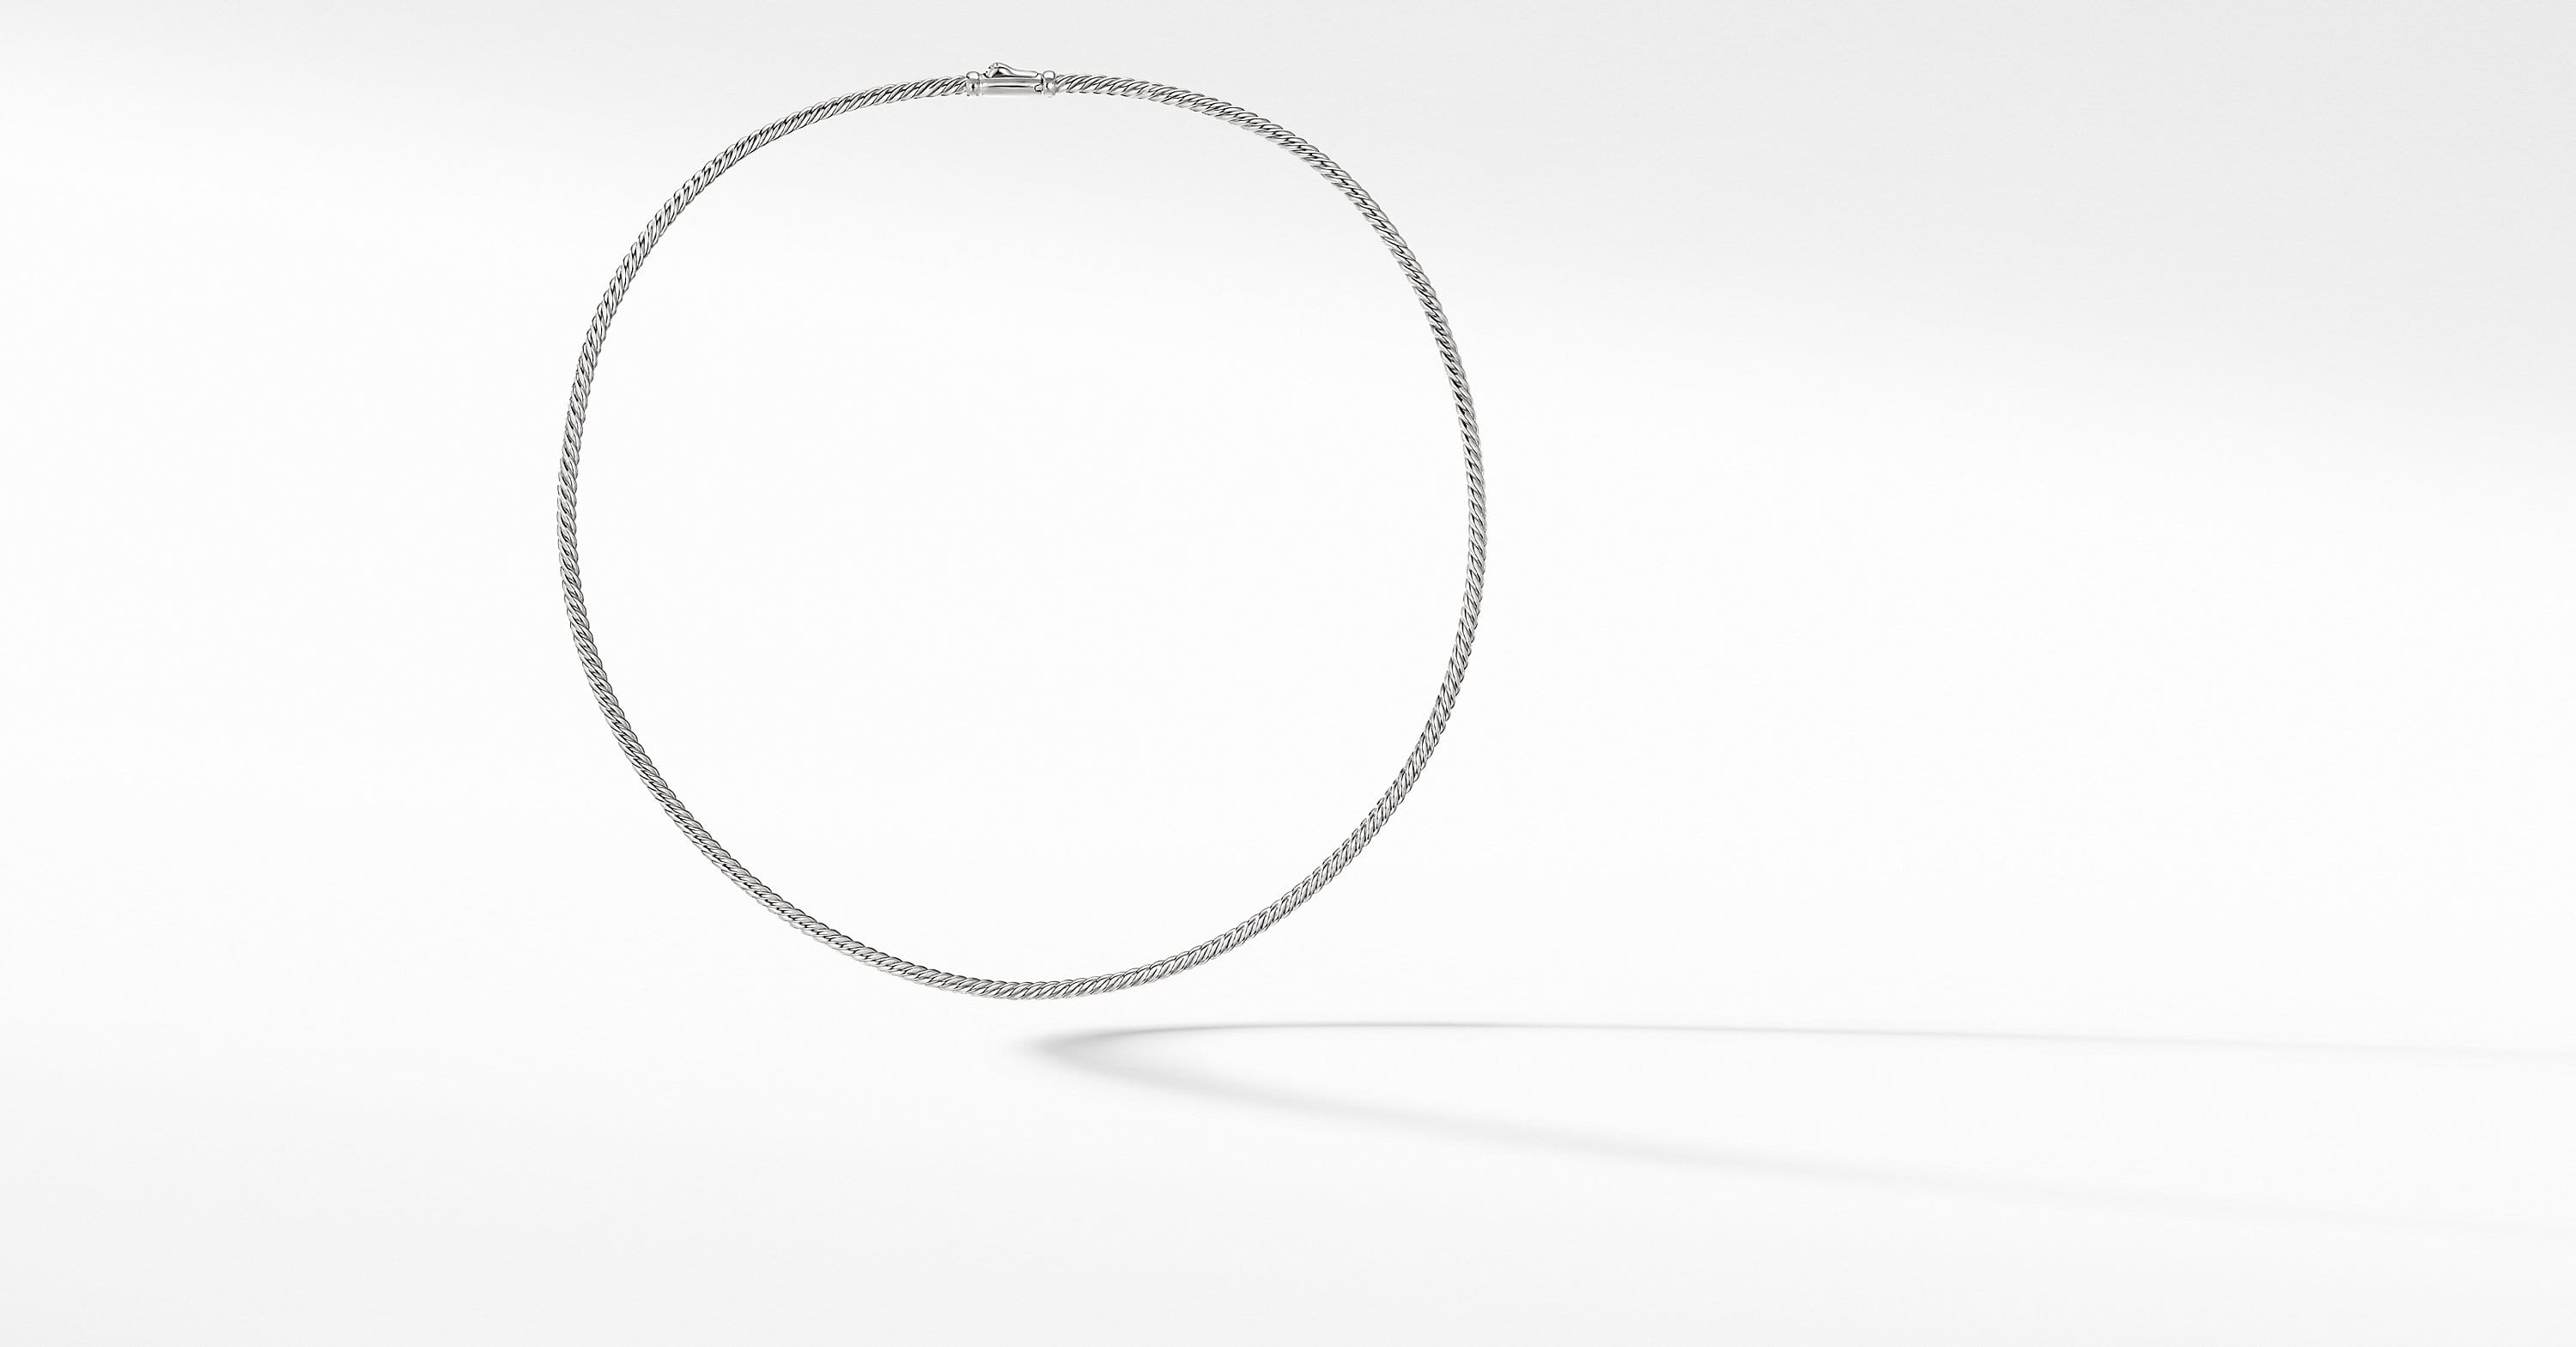 Sculpted Cable Necklace, 2.6mm